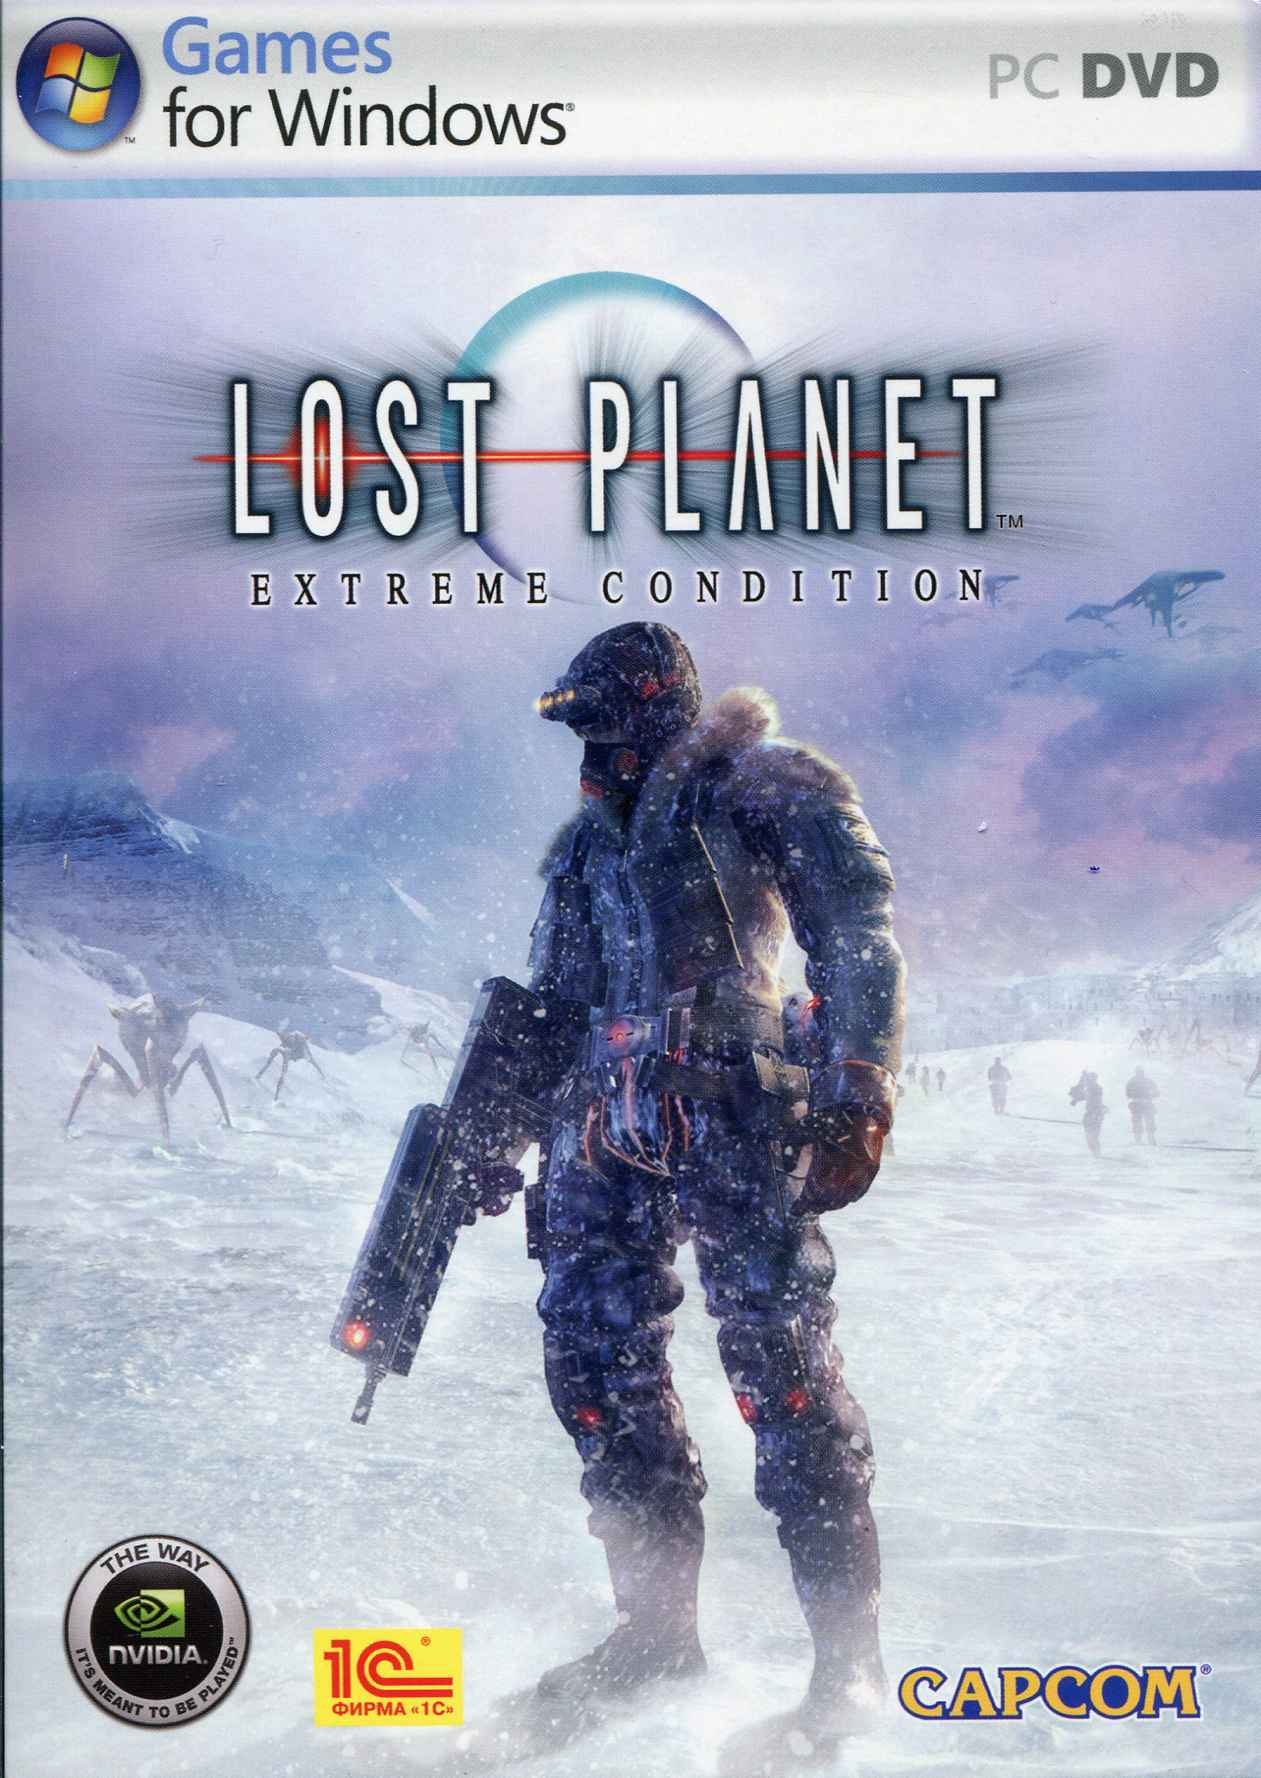 Lost Planet: Extreme Condition (activation key in Steam